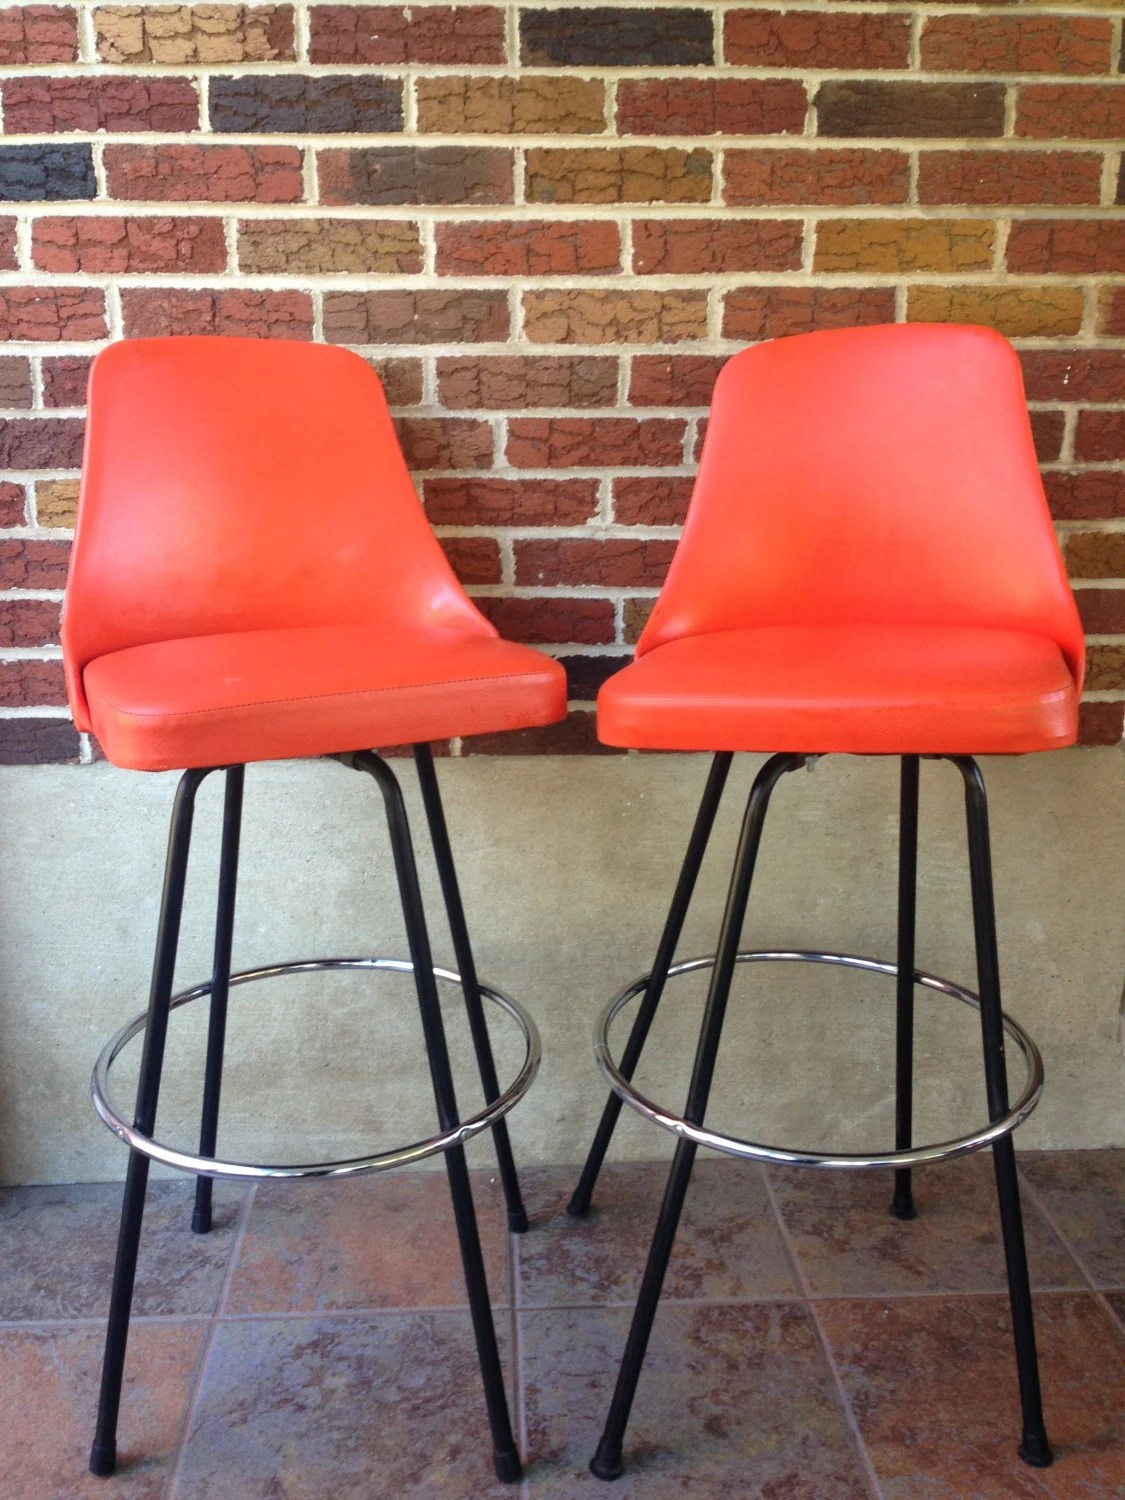 groovy pair of cosco swivel chairs kitchen chairs bar